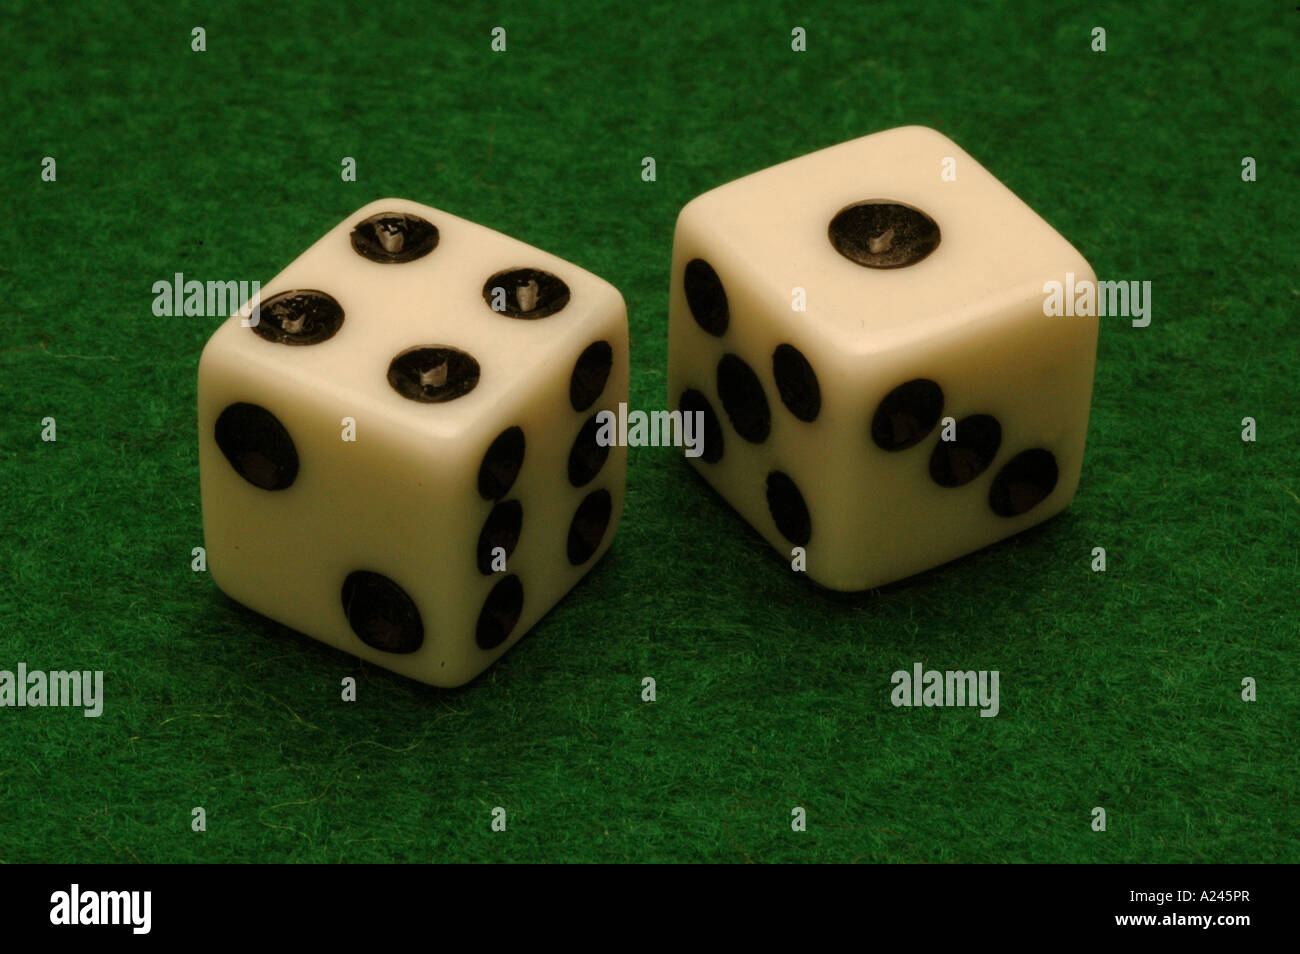 Dice on a green felt gambling table - Stock Image